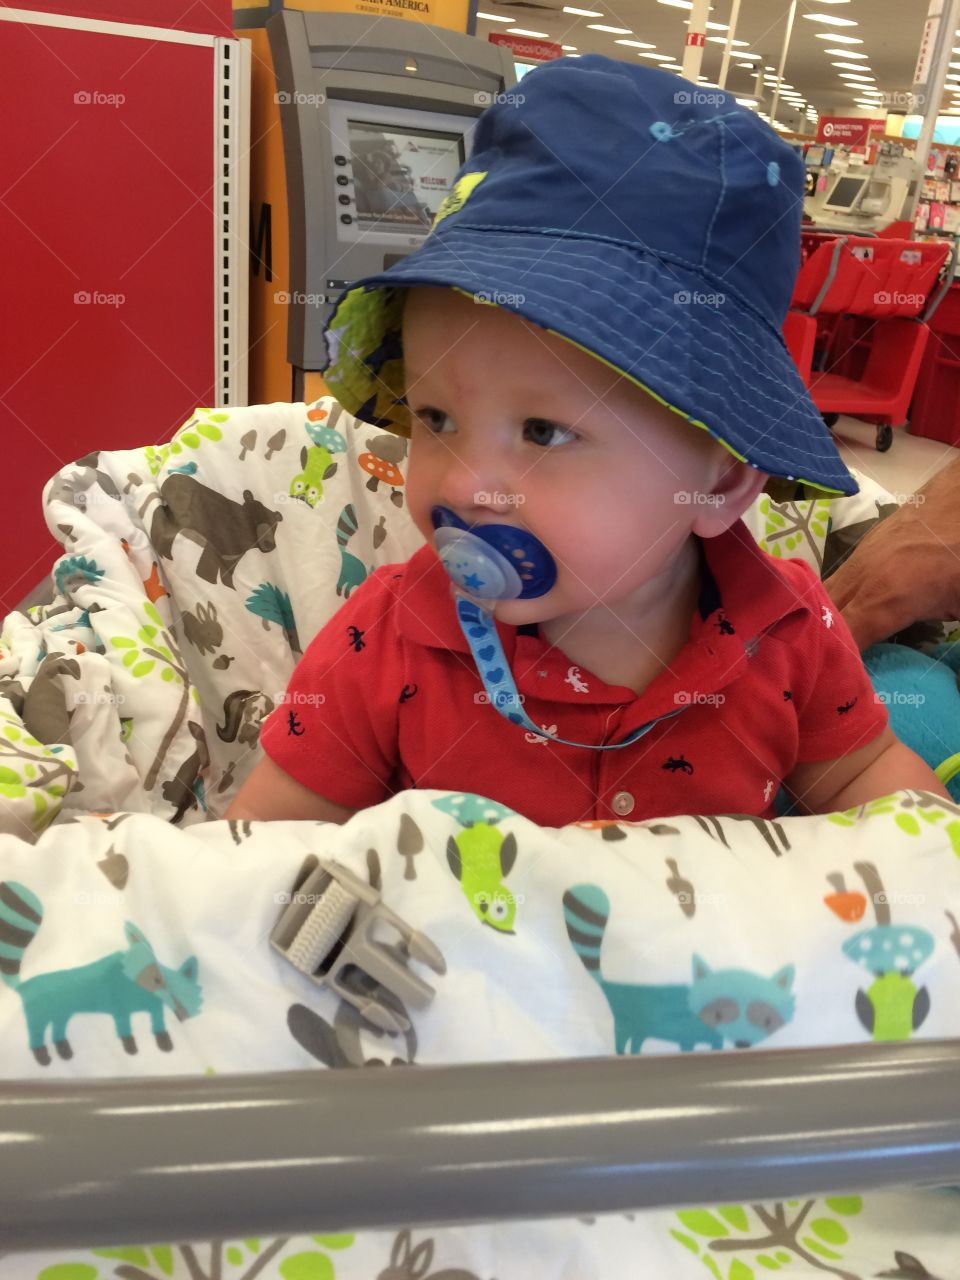 Baby at the supermarket